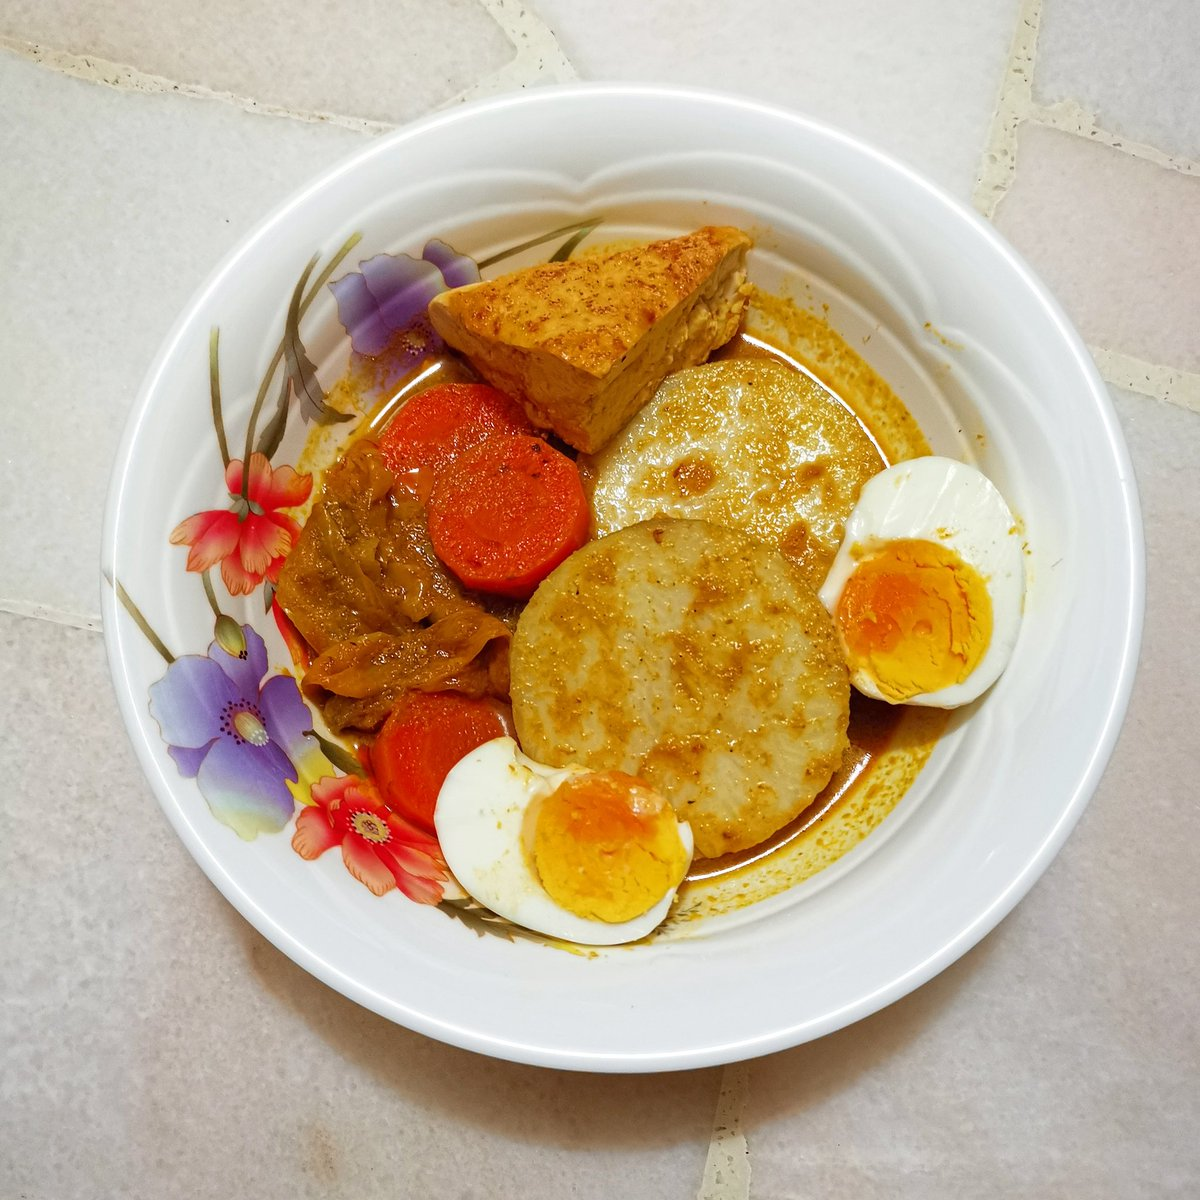 Lontong (comprised rice cake in curry vegetables) #lontong #lontongsayur #tofu #egg #homemade #curry #chef #ketogenicdiet #healthy #fitness #lifestyle #coffee #tea #StayAtHome #eatathome #abendessen #AsianFood #咖喱 #咖哩 #料理写真 #おいしい #카레 https://t.co/tK2JE1op47